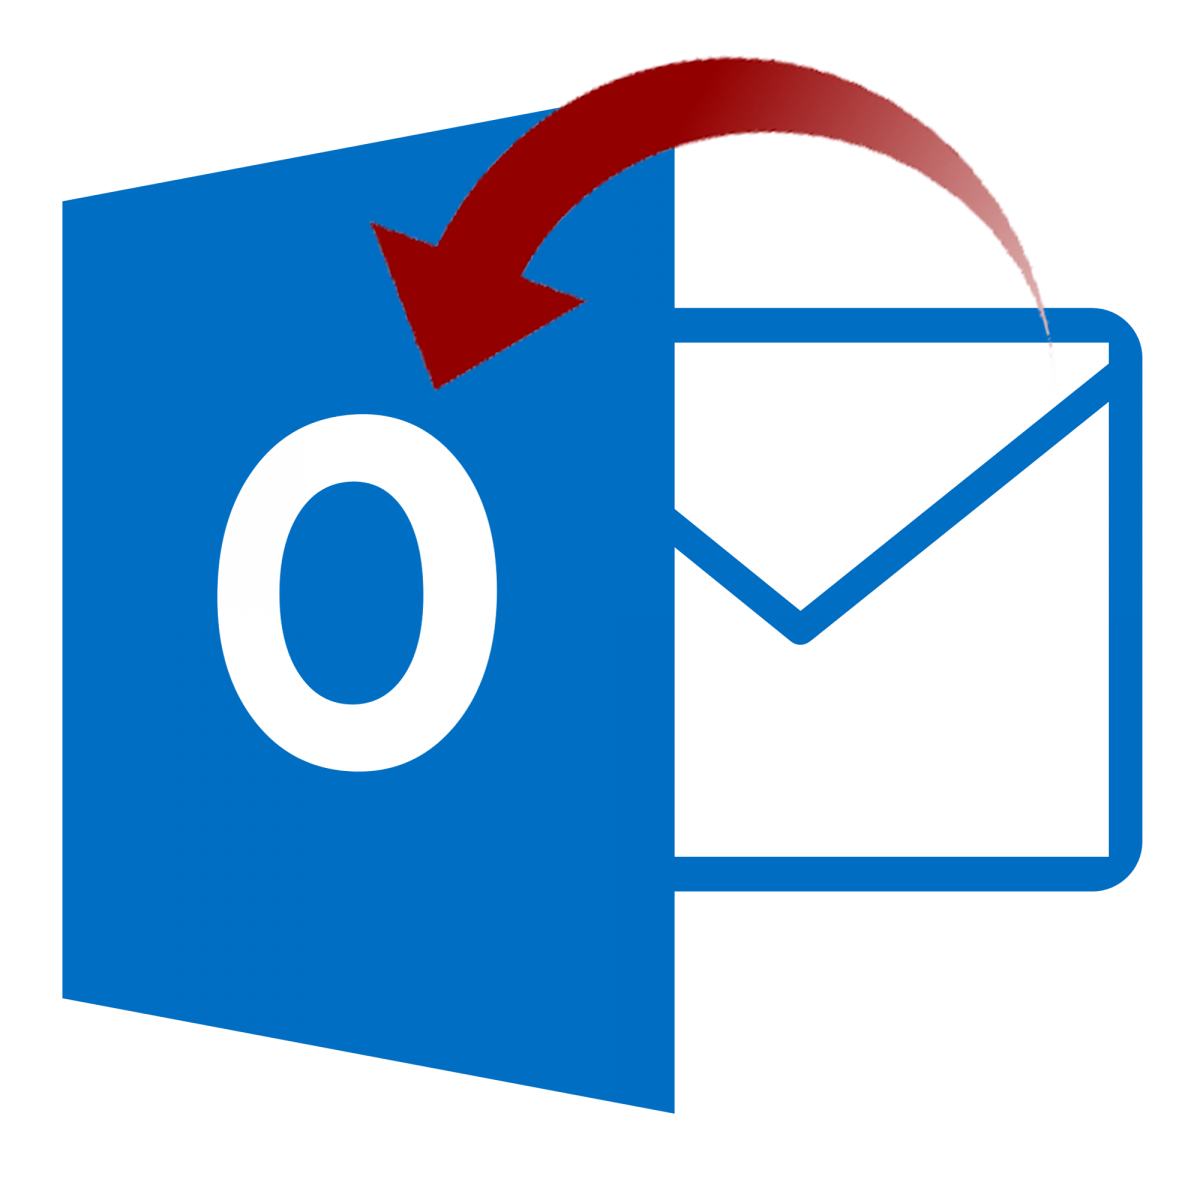 Outlook Office Outlook.Com Email 365 Microsoft PNG Image